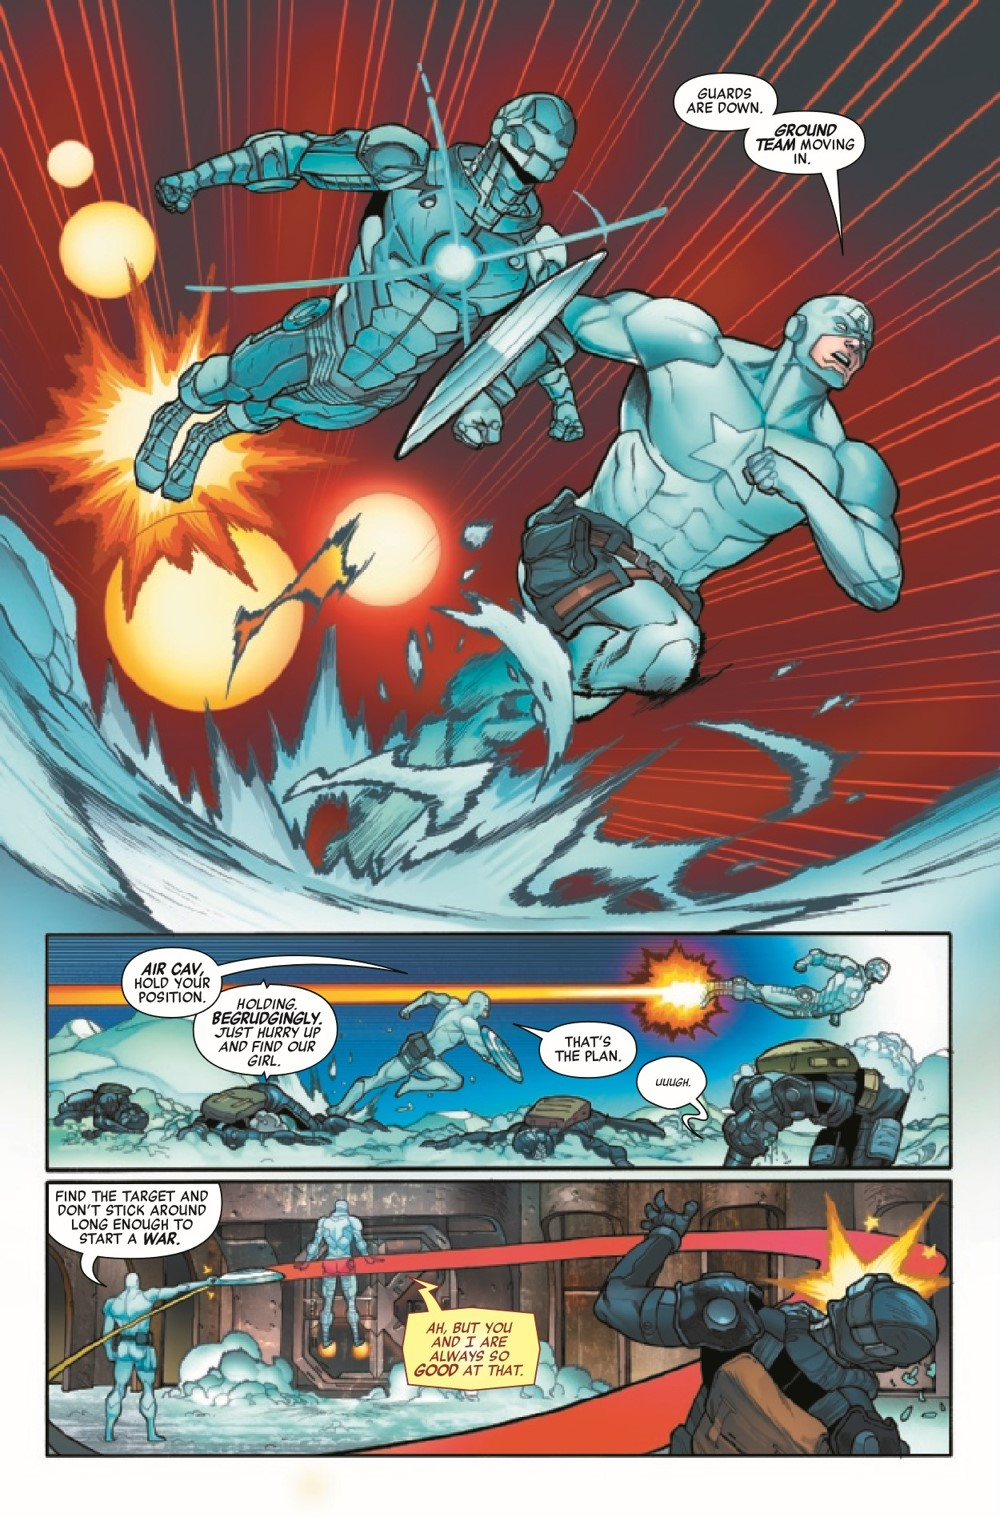 AVEN2018047_Preview-4 ComicList Previews: THE AVENGERS #47